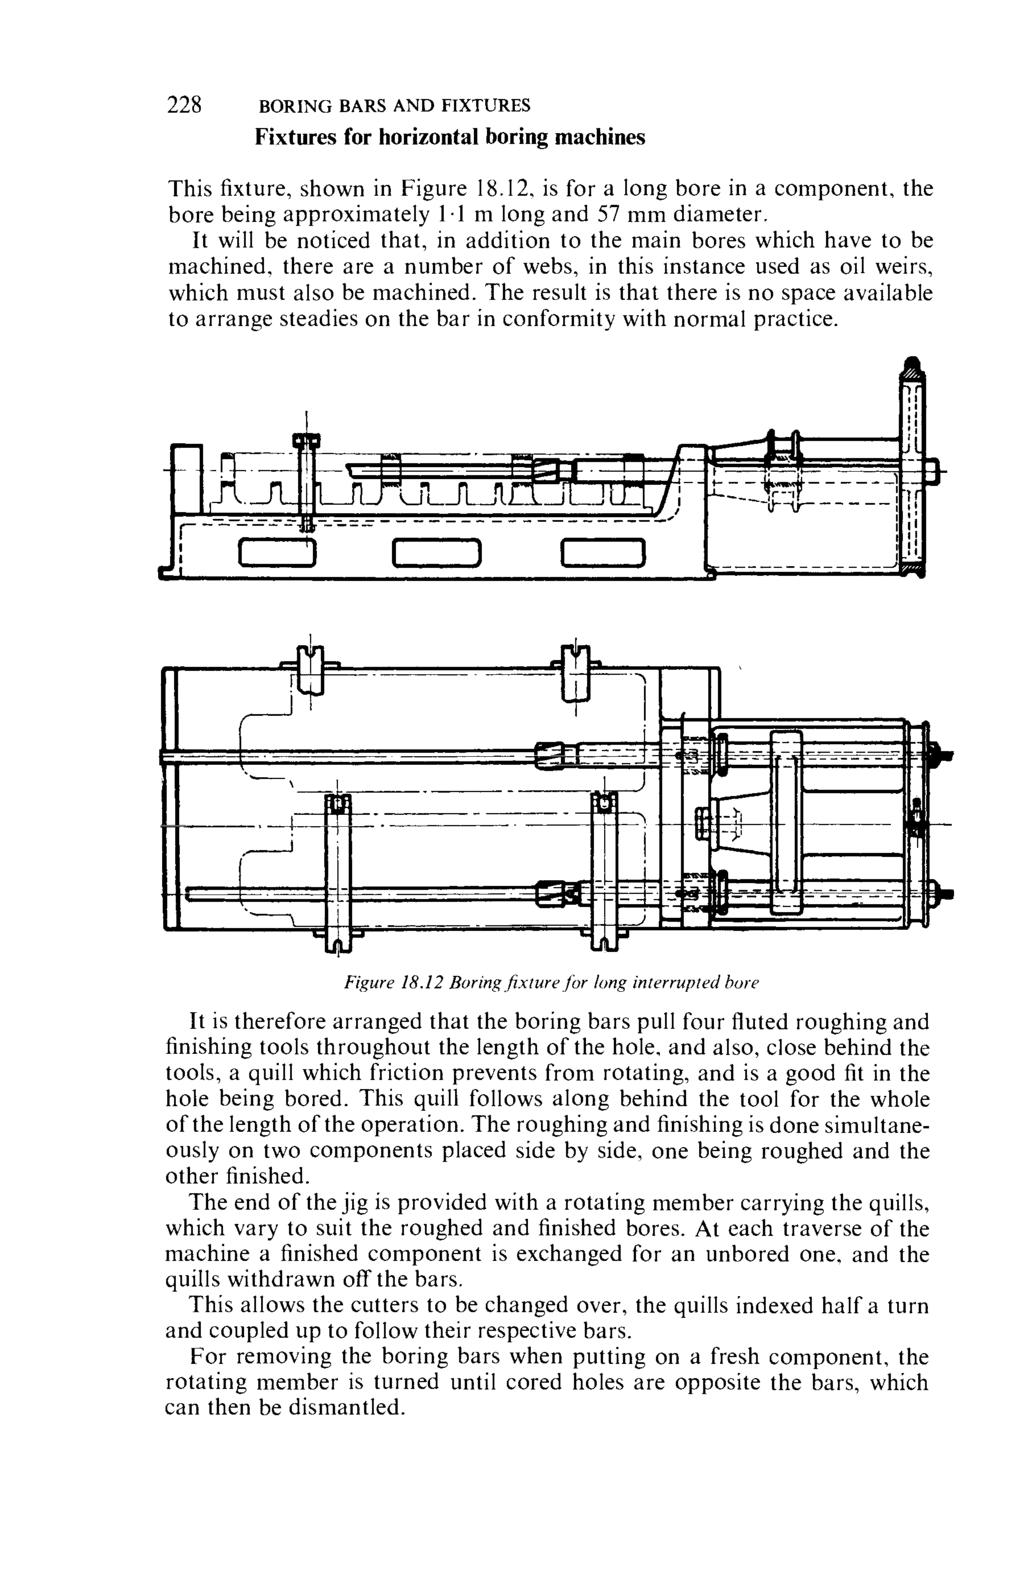 228 BORING BARS AND FIXTURES Fixtures for horizontal boring machines This fixture, shown in Figure 18.12, is for a long bore in a component, the bore being approximately 11 m long and 57 mm diameter.